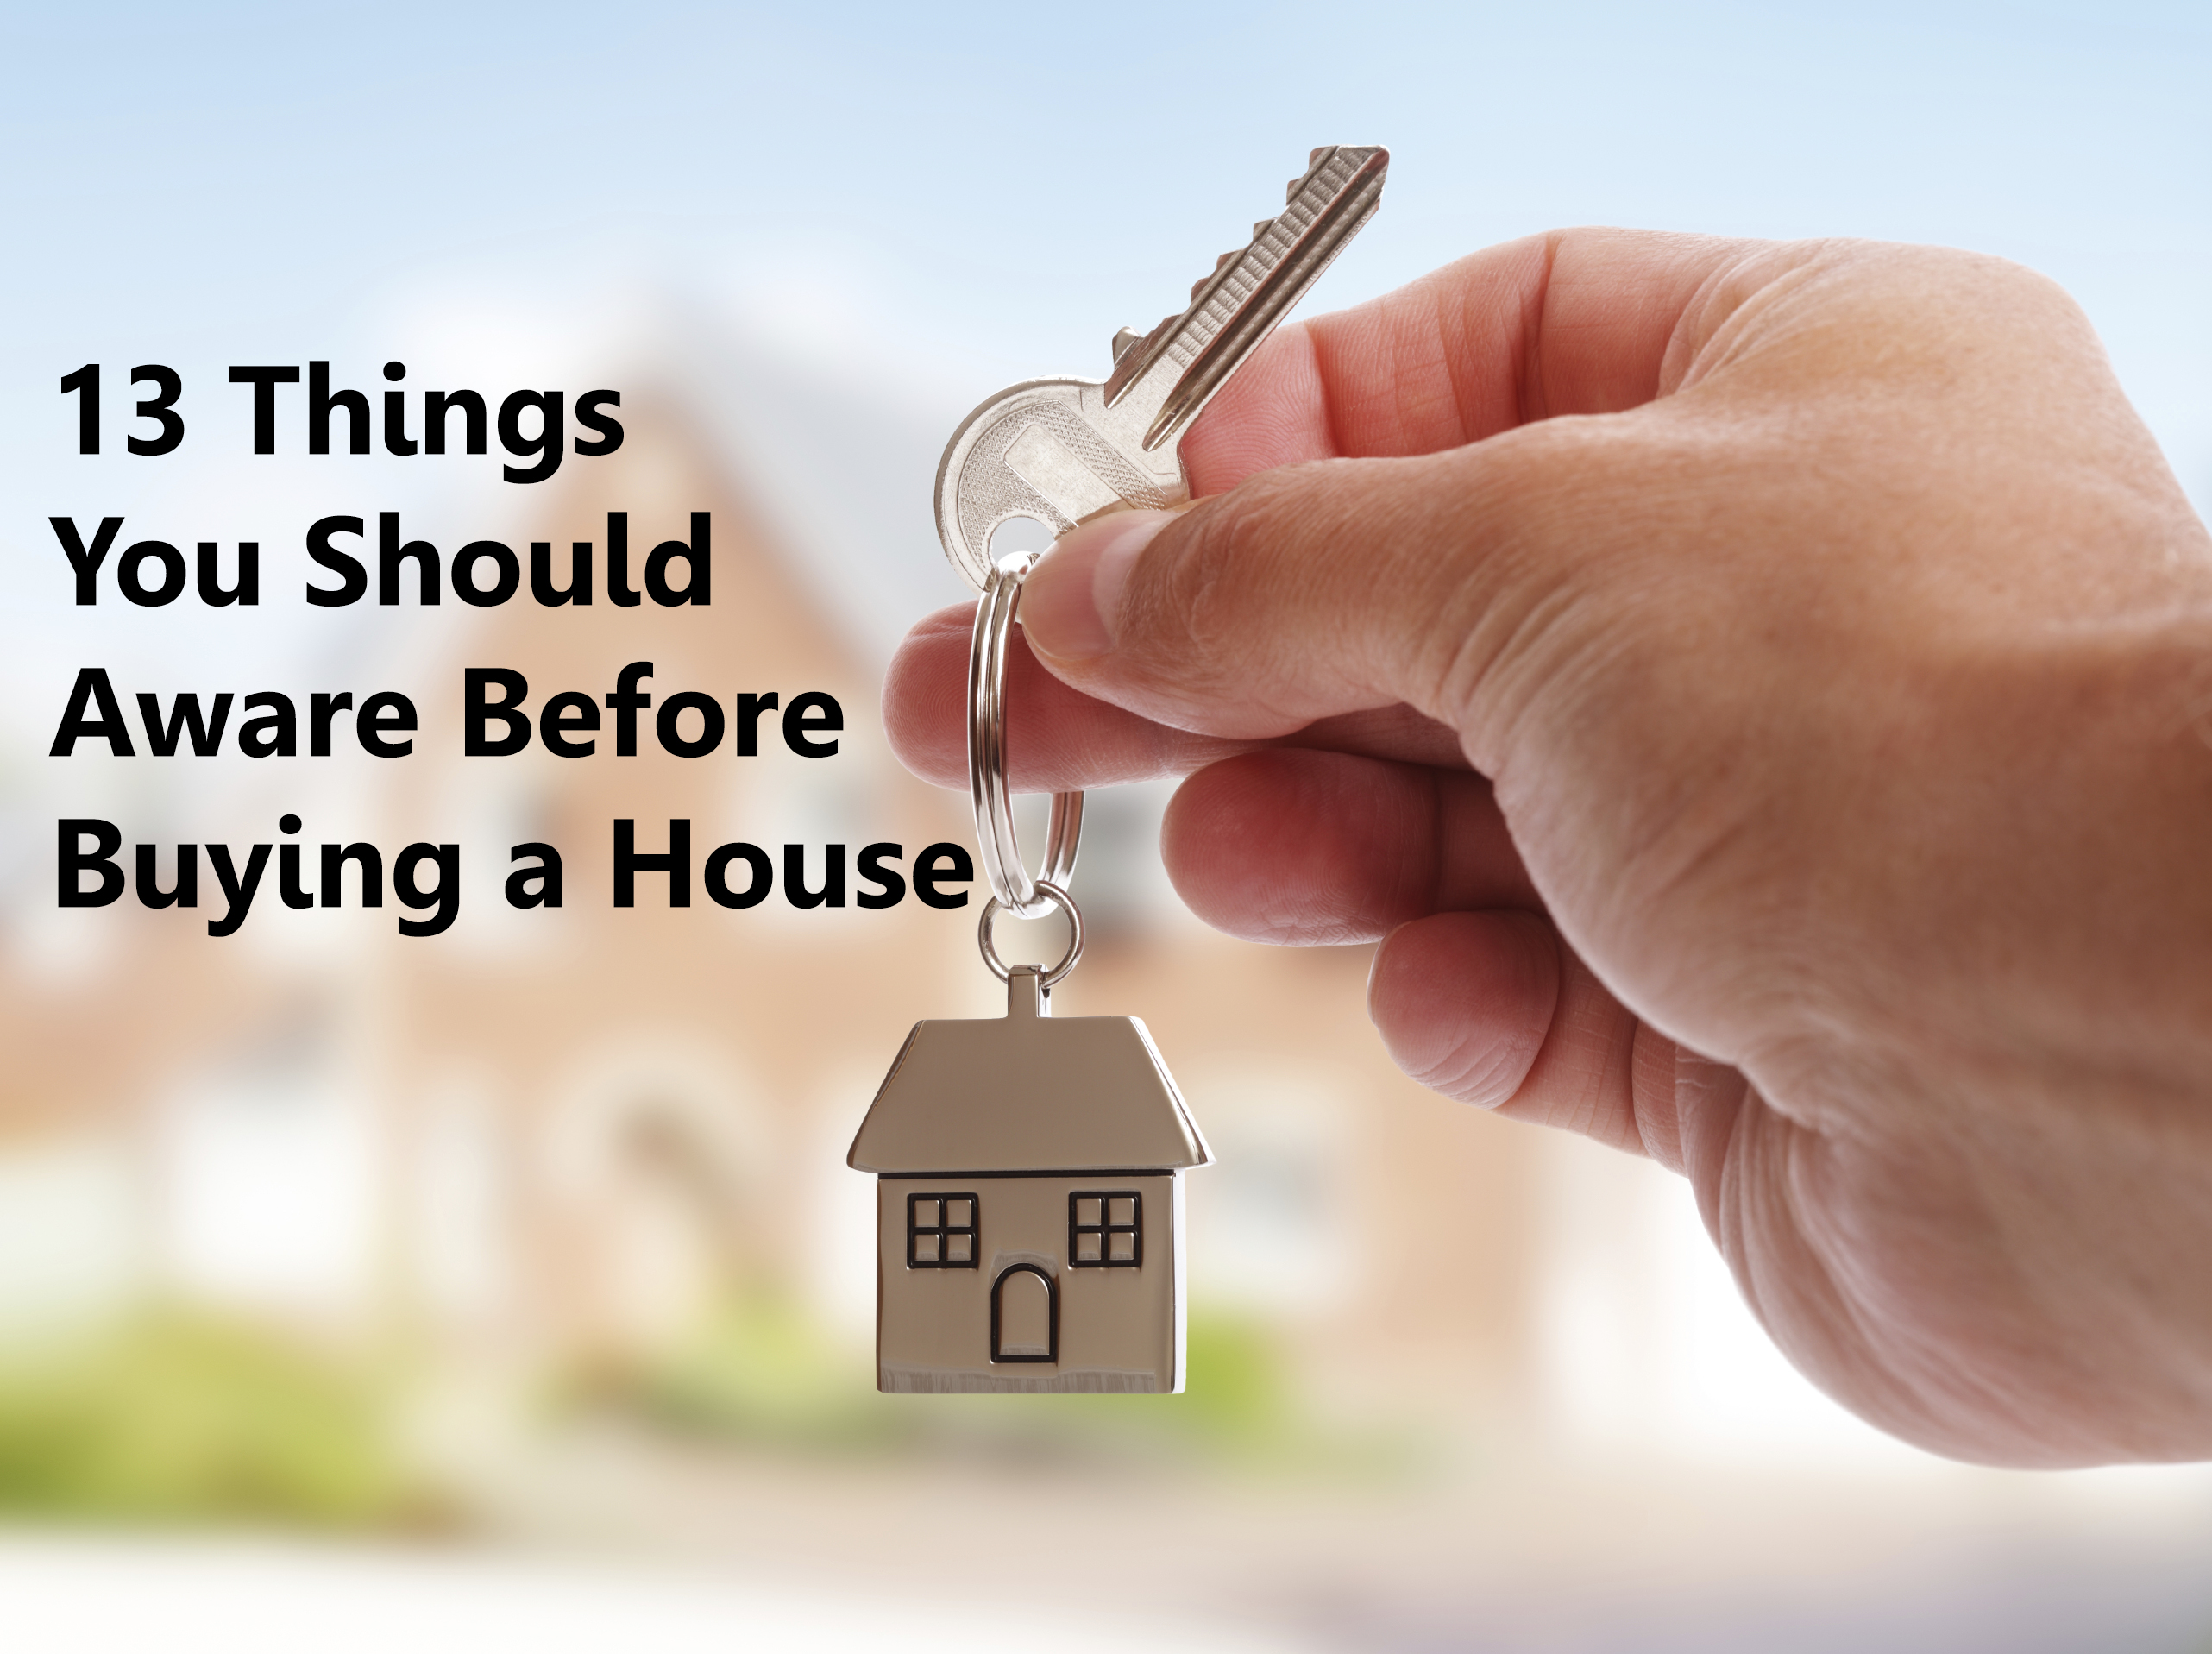 Things You Should Aware Before Buying a House